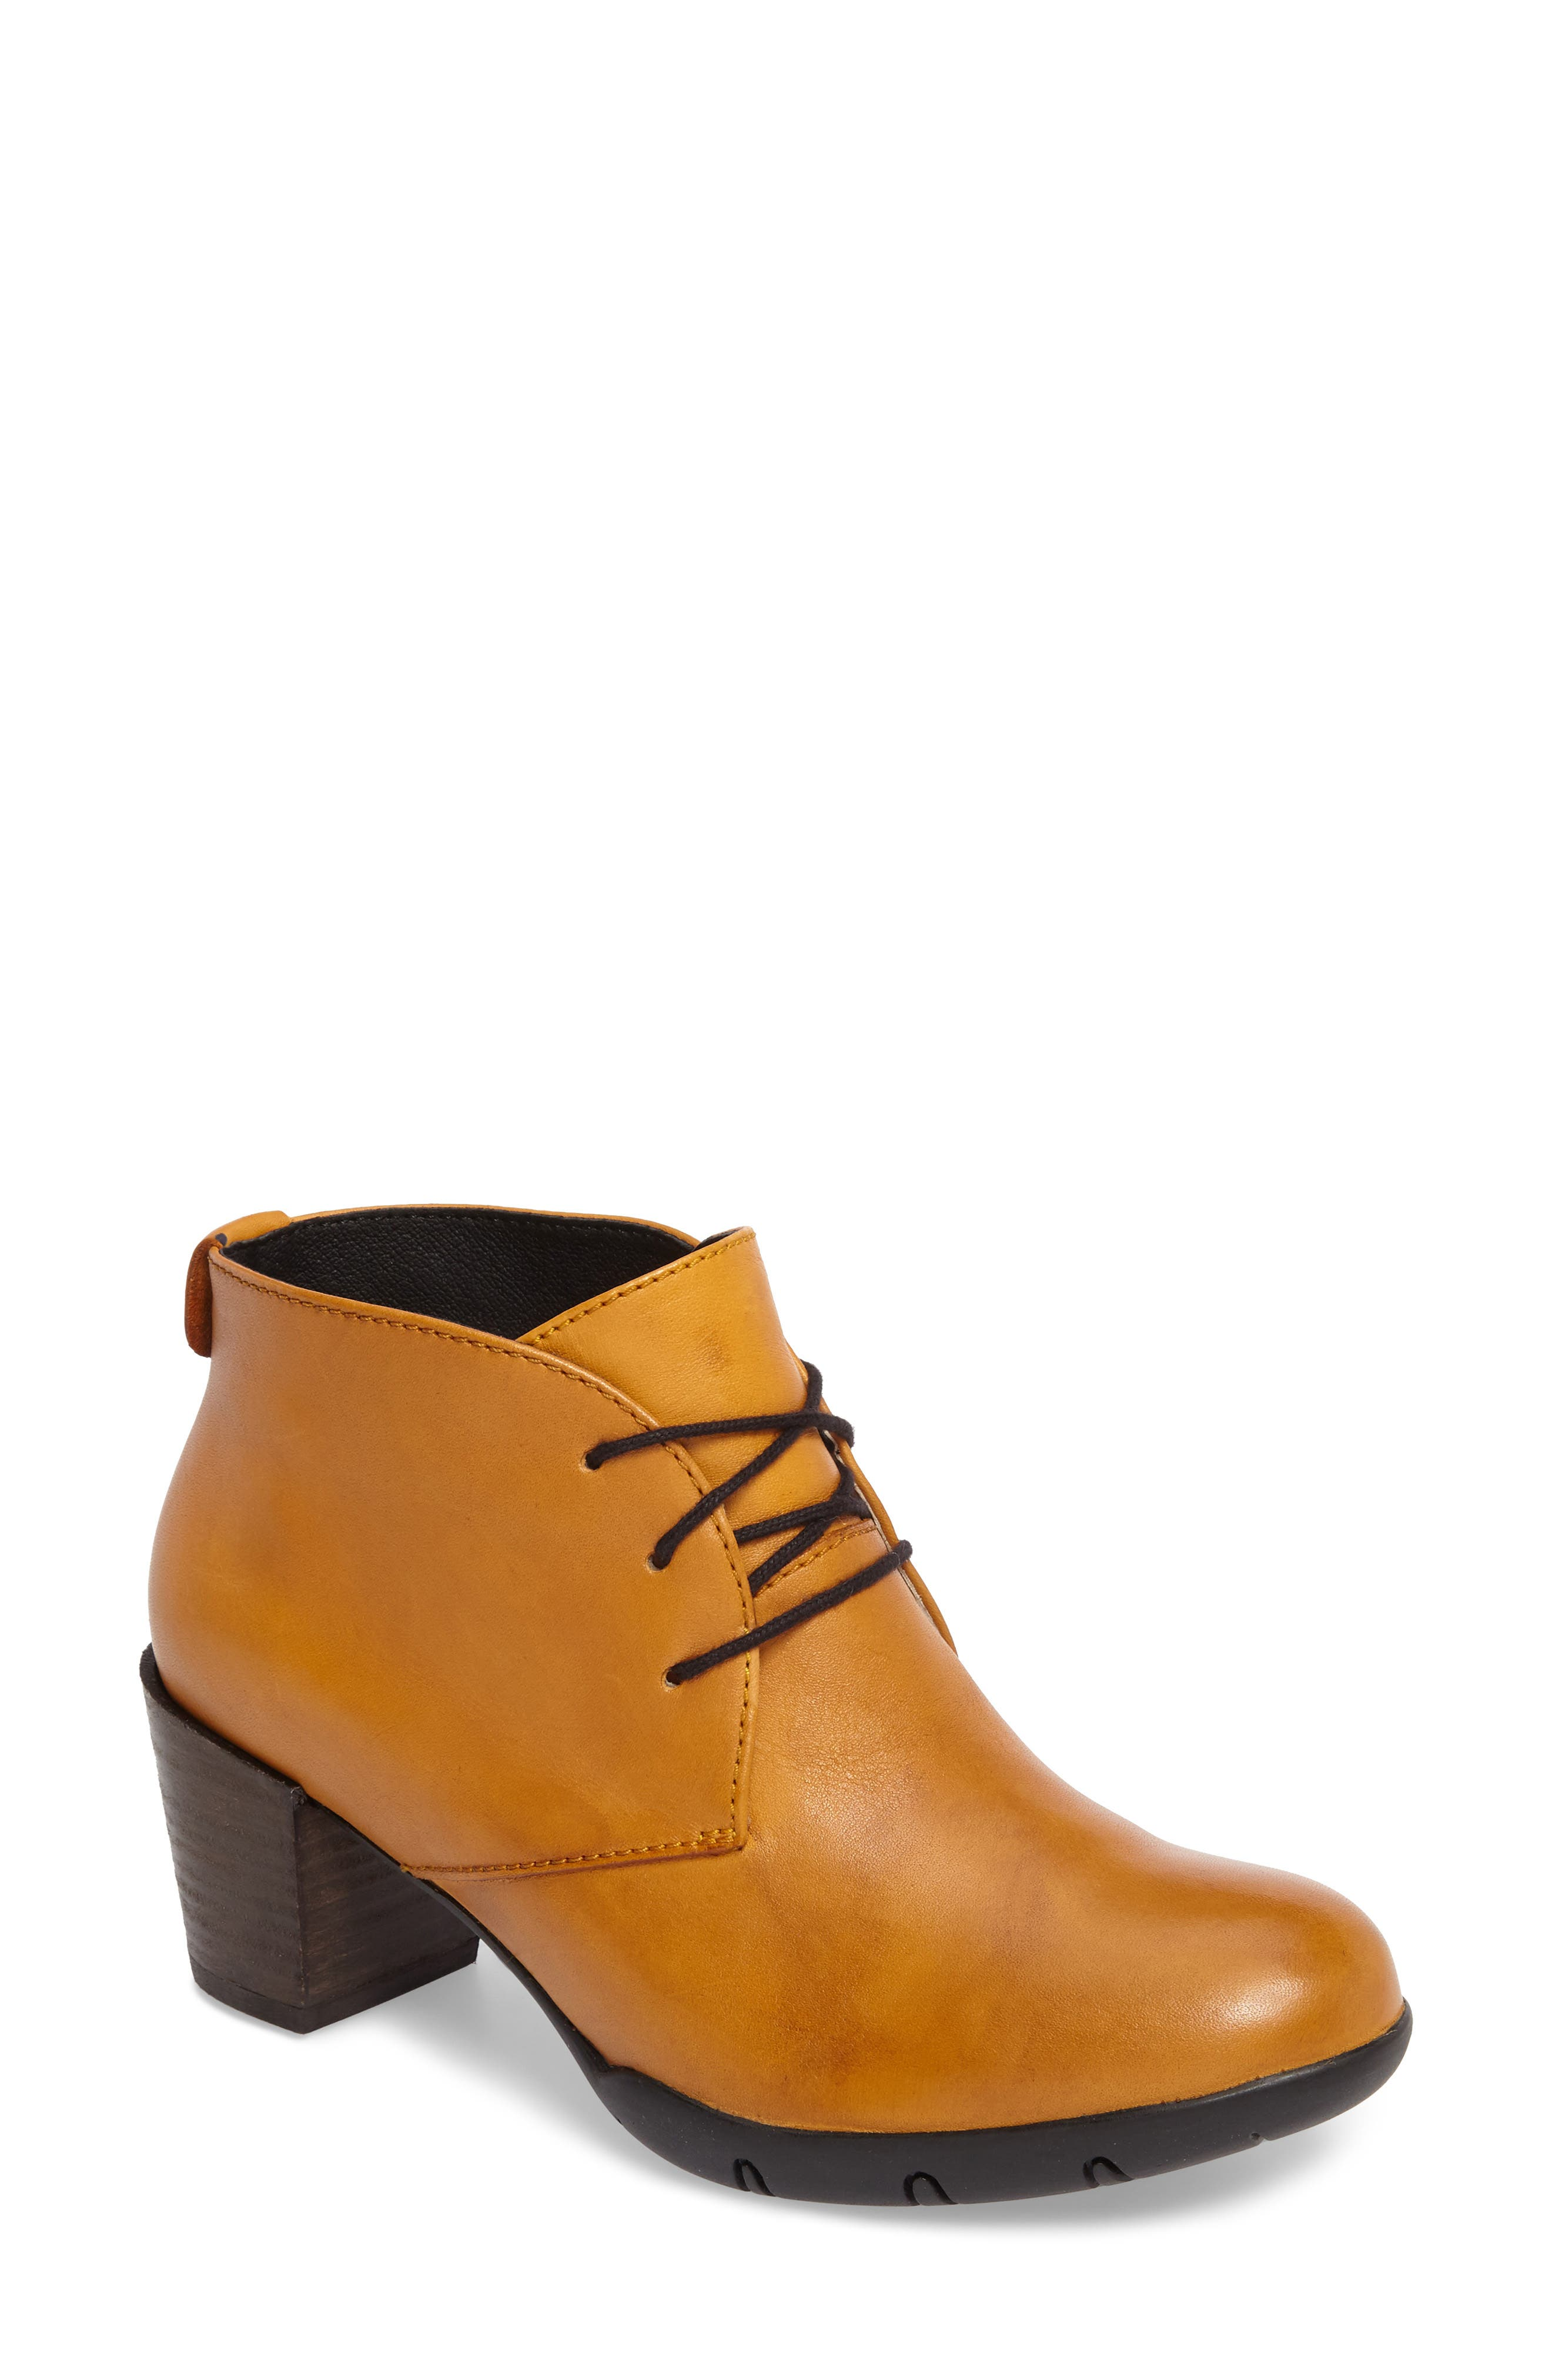 Bighorn Bootie,                         Main,                         color, Curry Leather